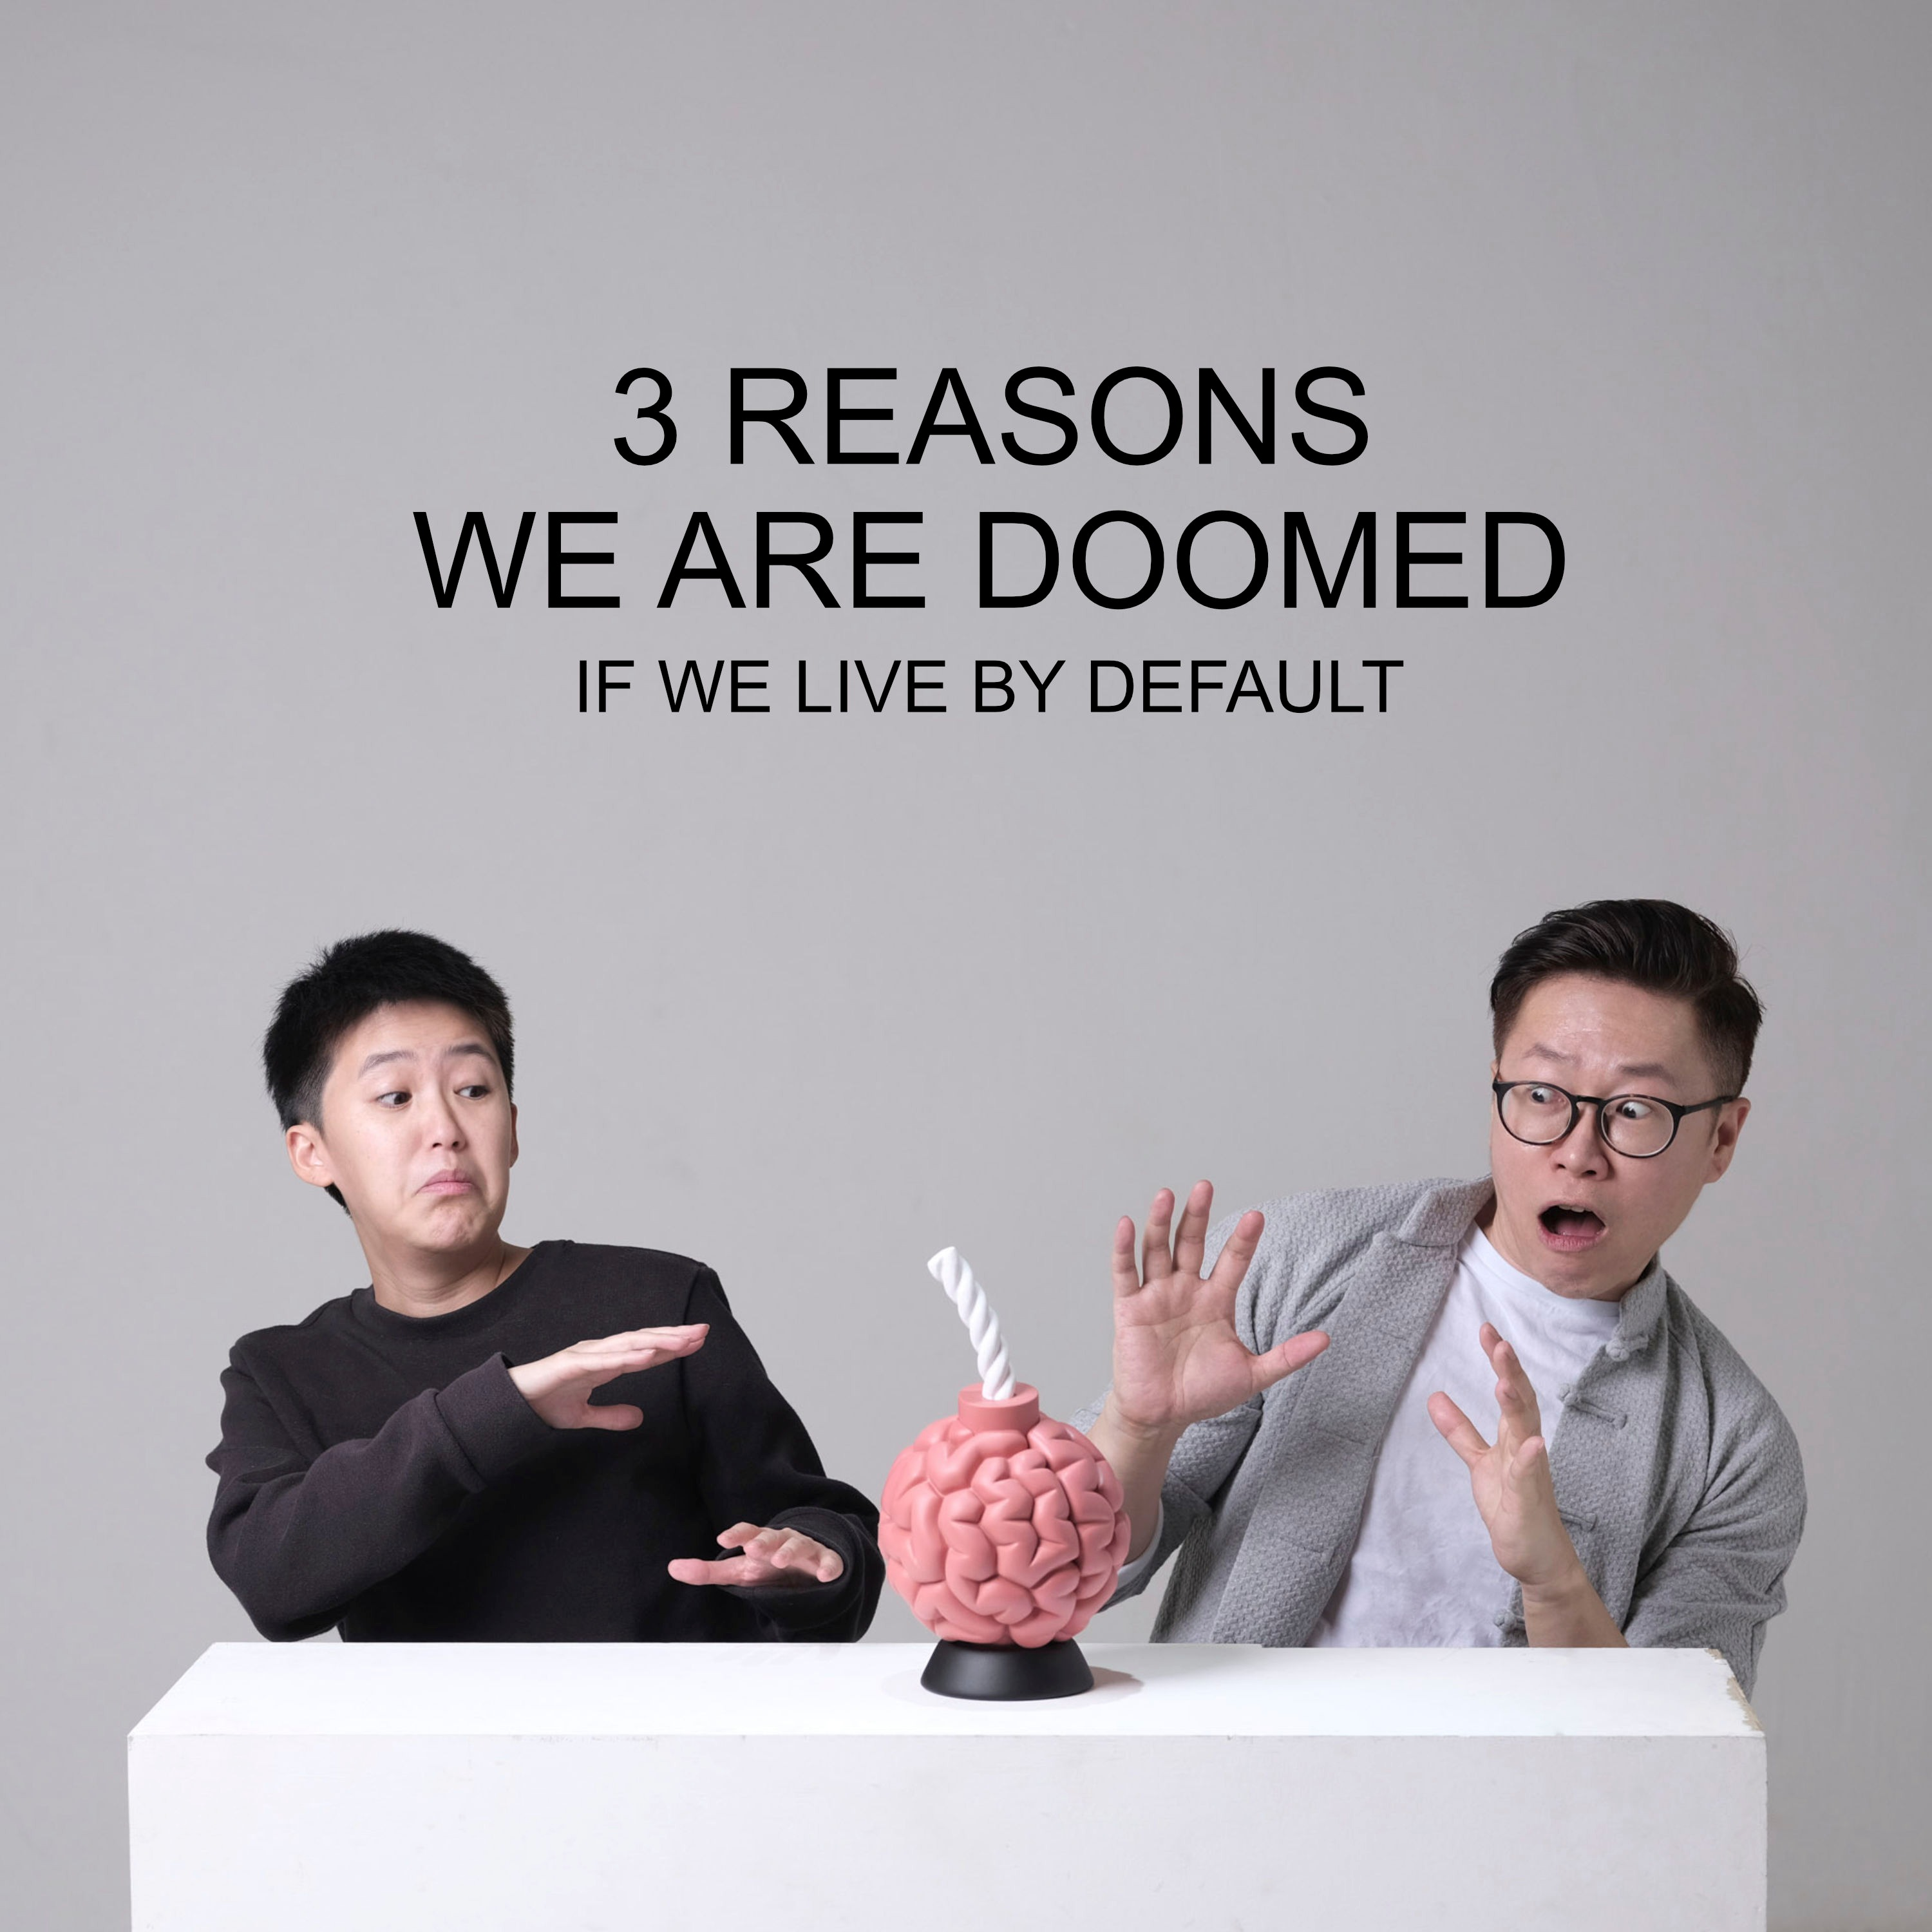 Ep 16 - 3 Reasons We Are Doomed (If We Live By Default)